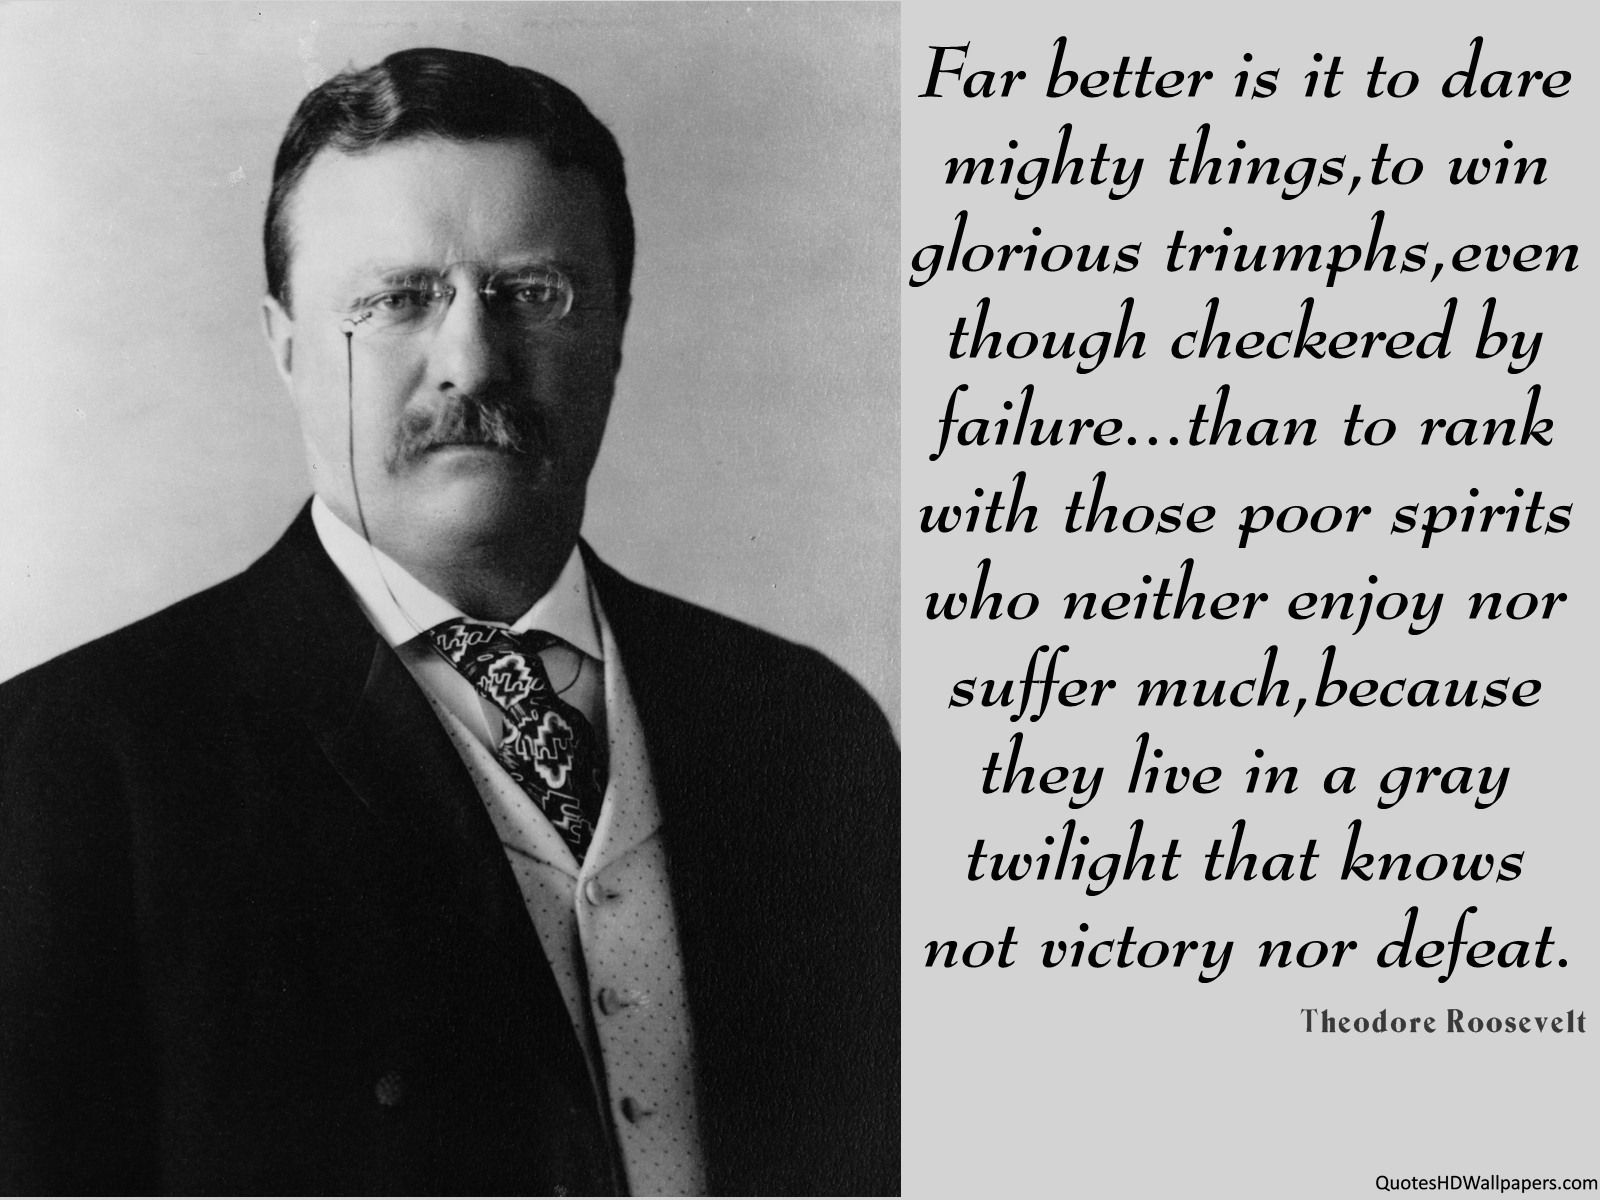 Teddy Roosevelt Quotes Teddy Roosevelt Quotes Cool 25 Best Teddy Roosevelt Quotes Ideas